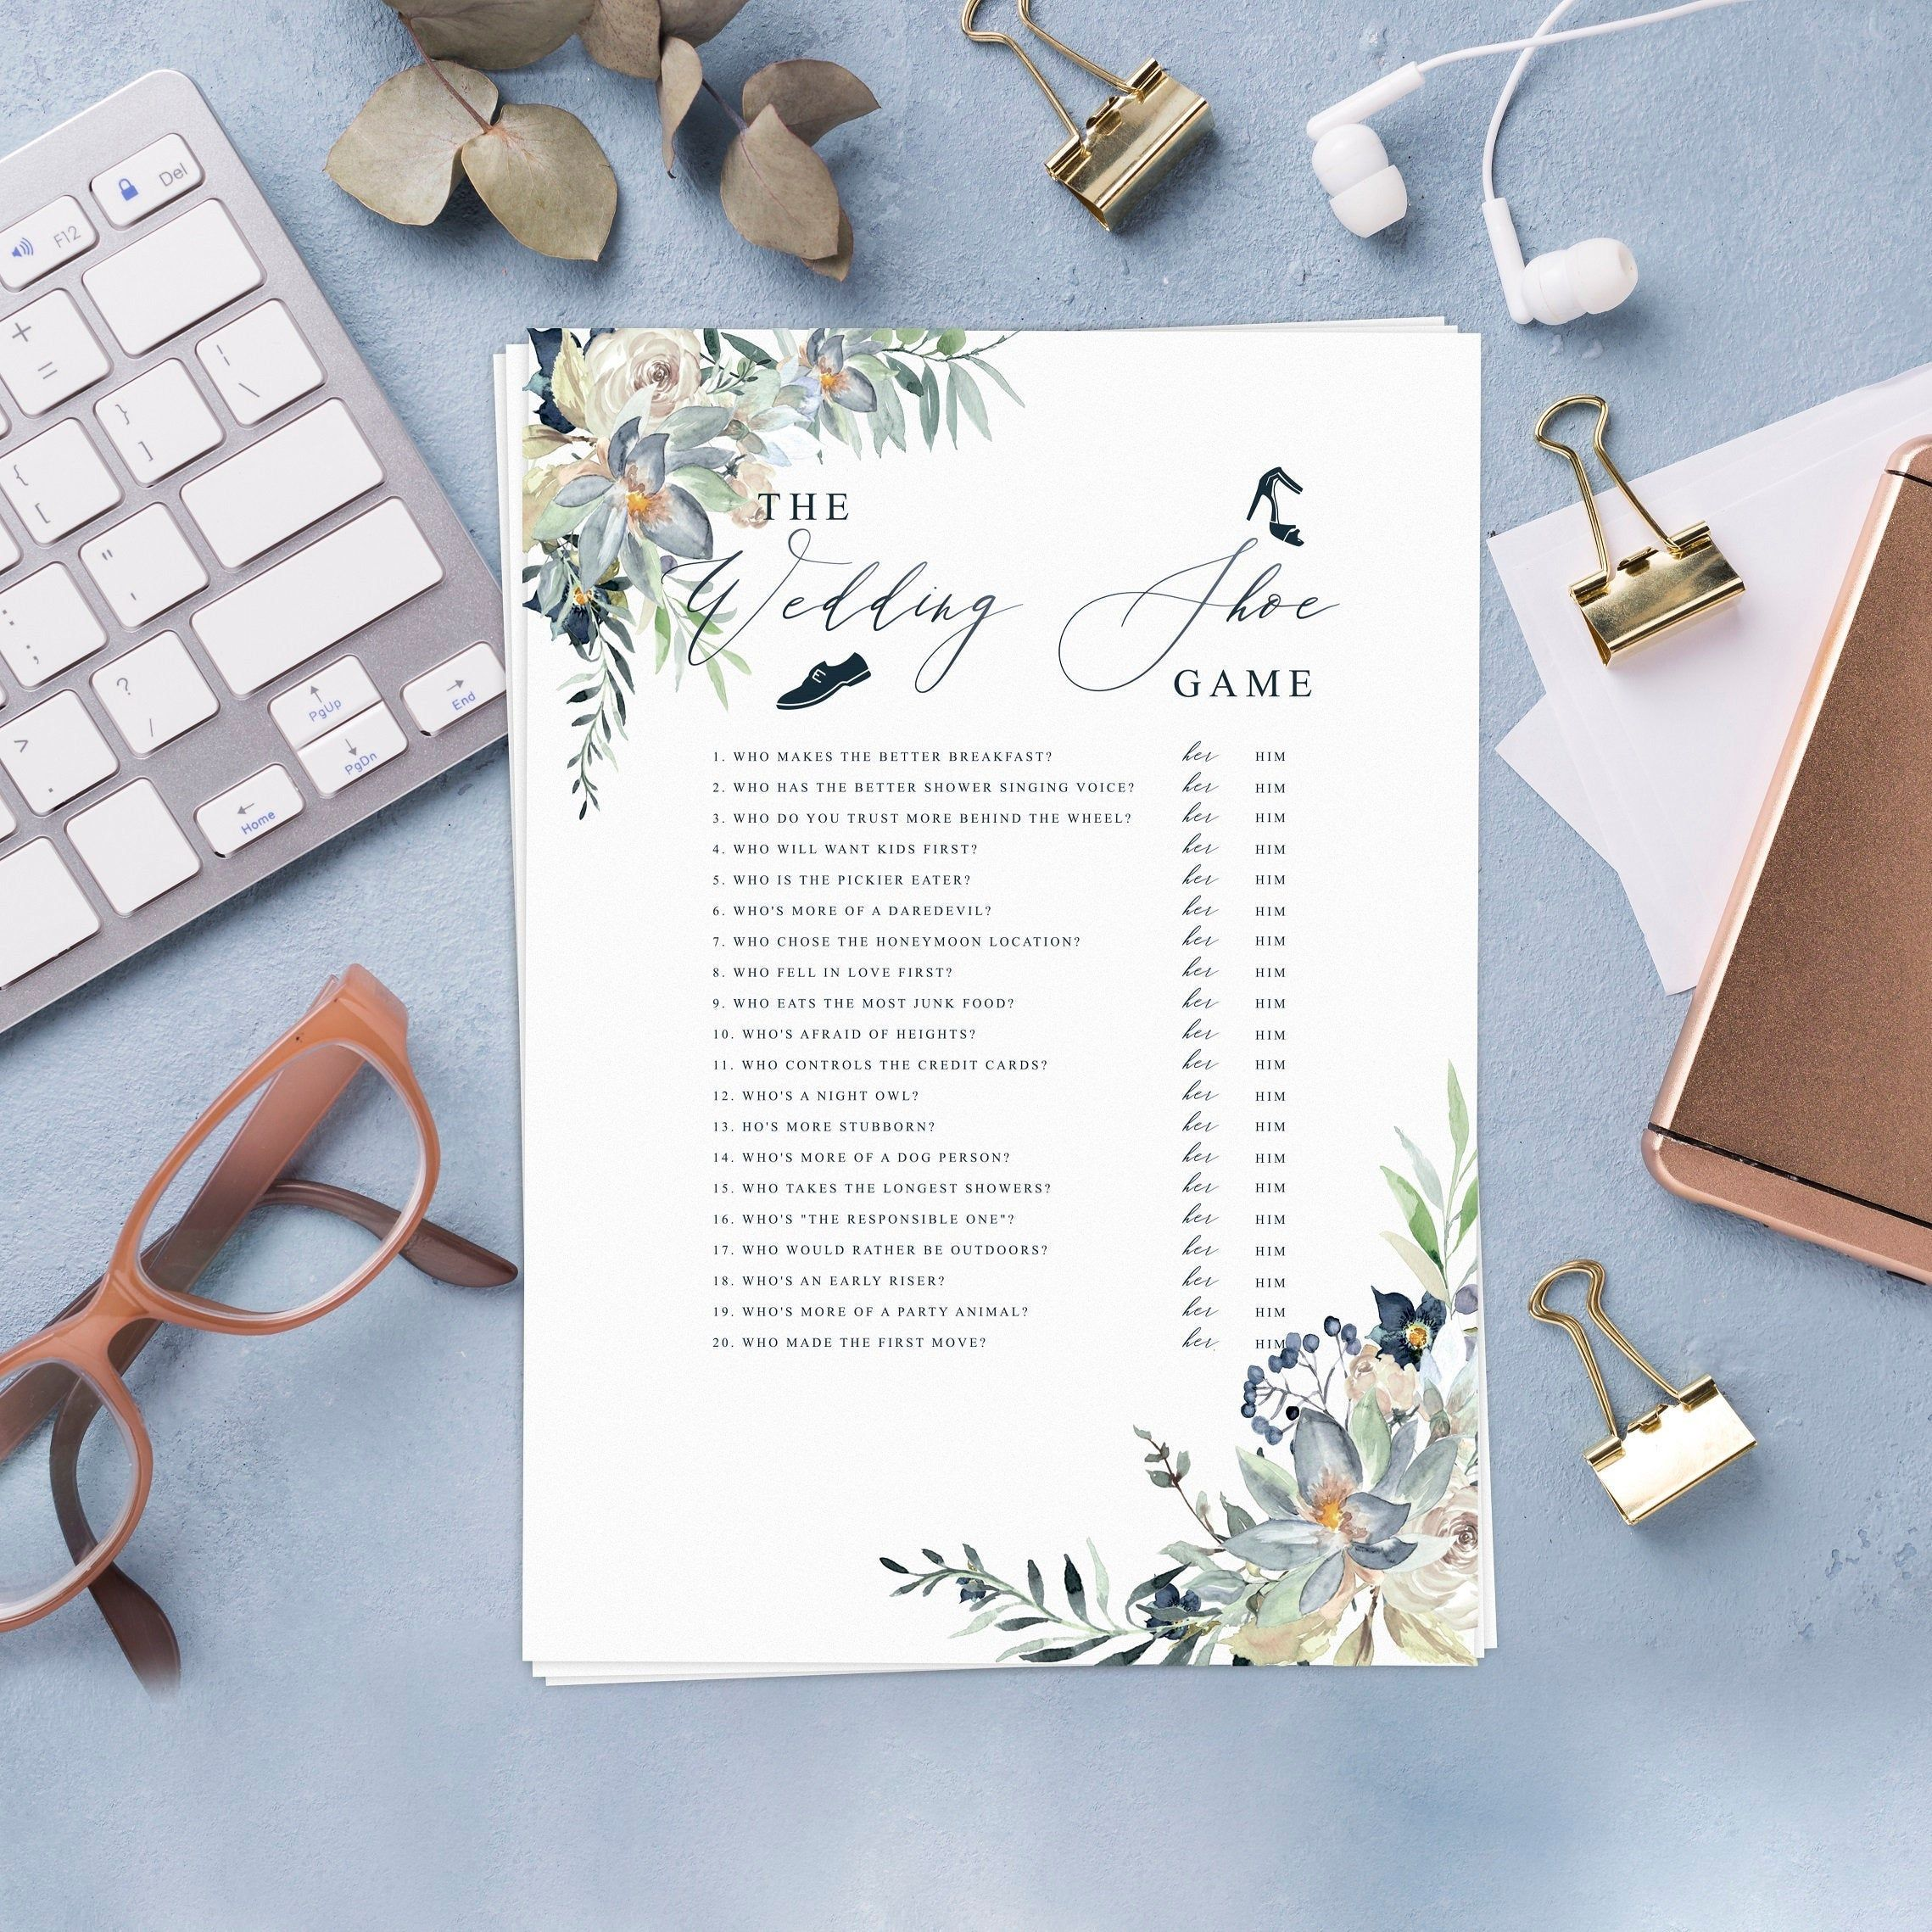 Dusty Blue Floral The Wedding Shoe Game Bridal Shower game